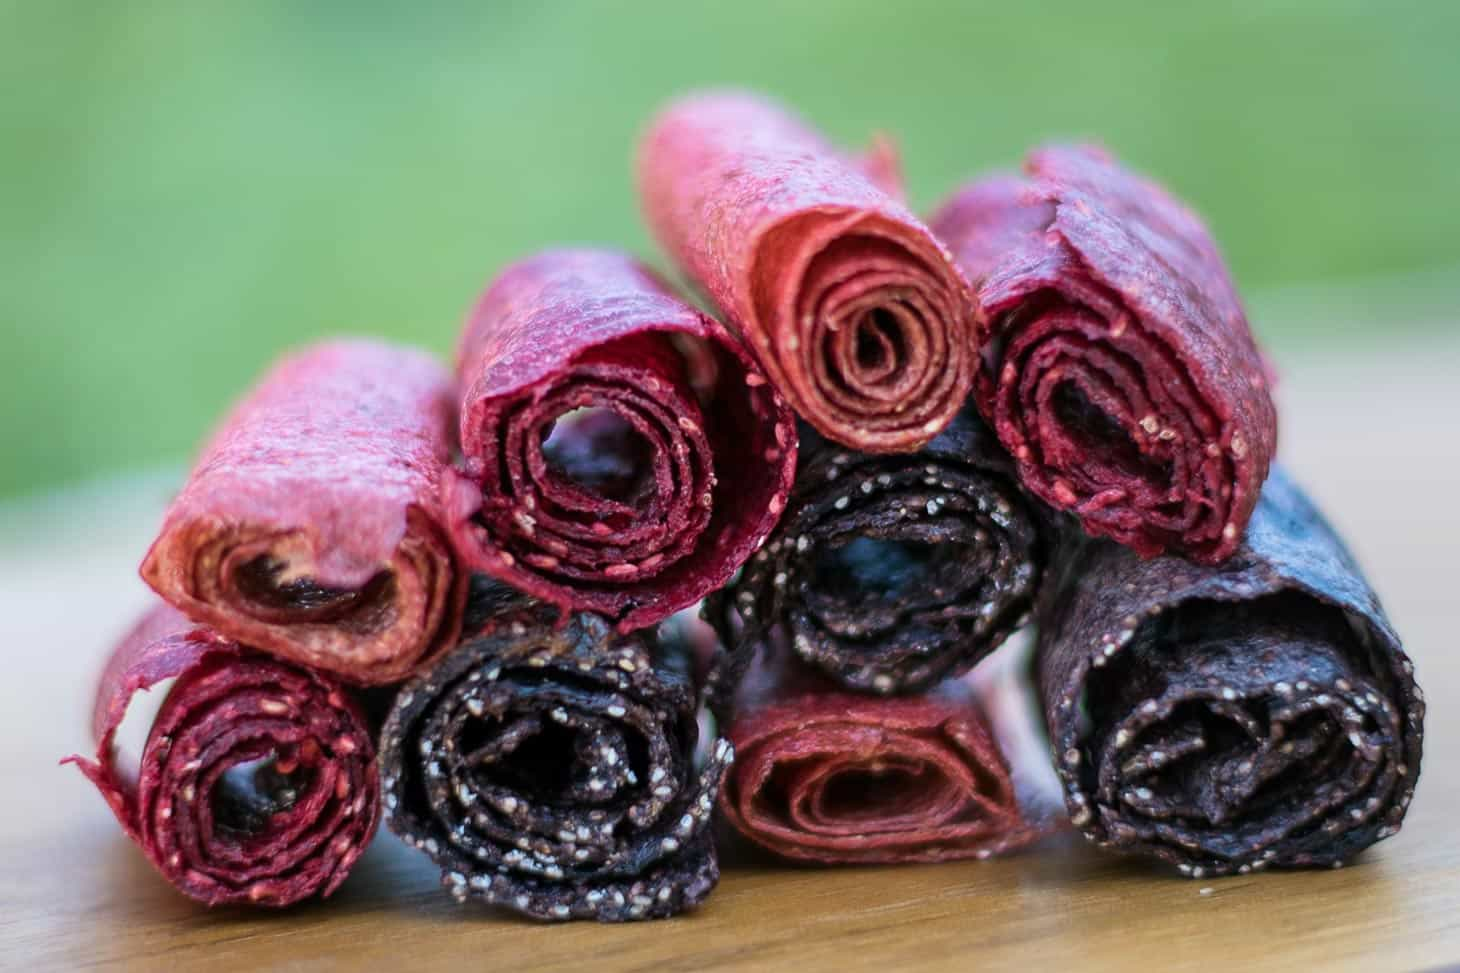 Fruit leathers rolled up and stacked in a pile